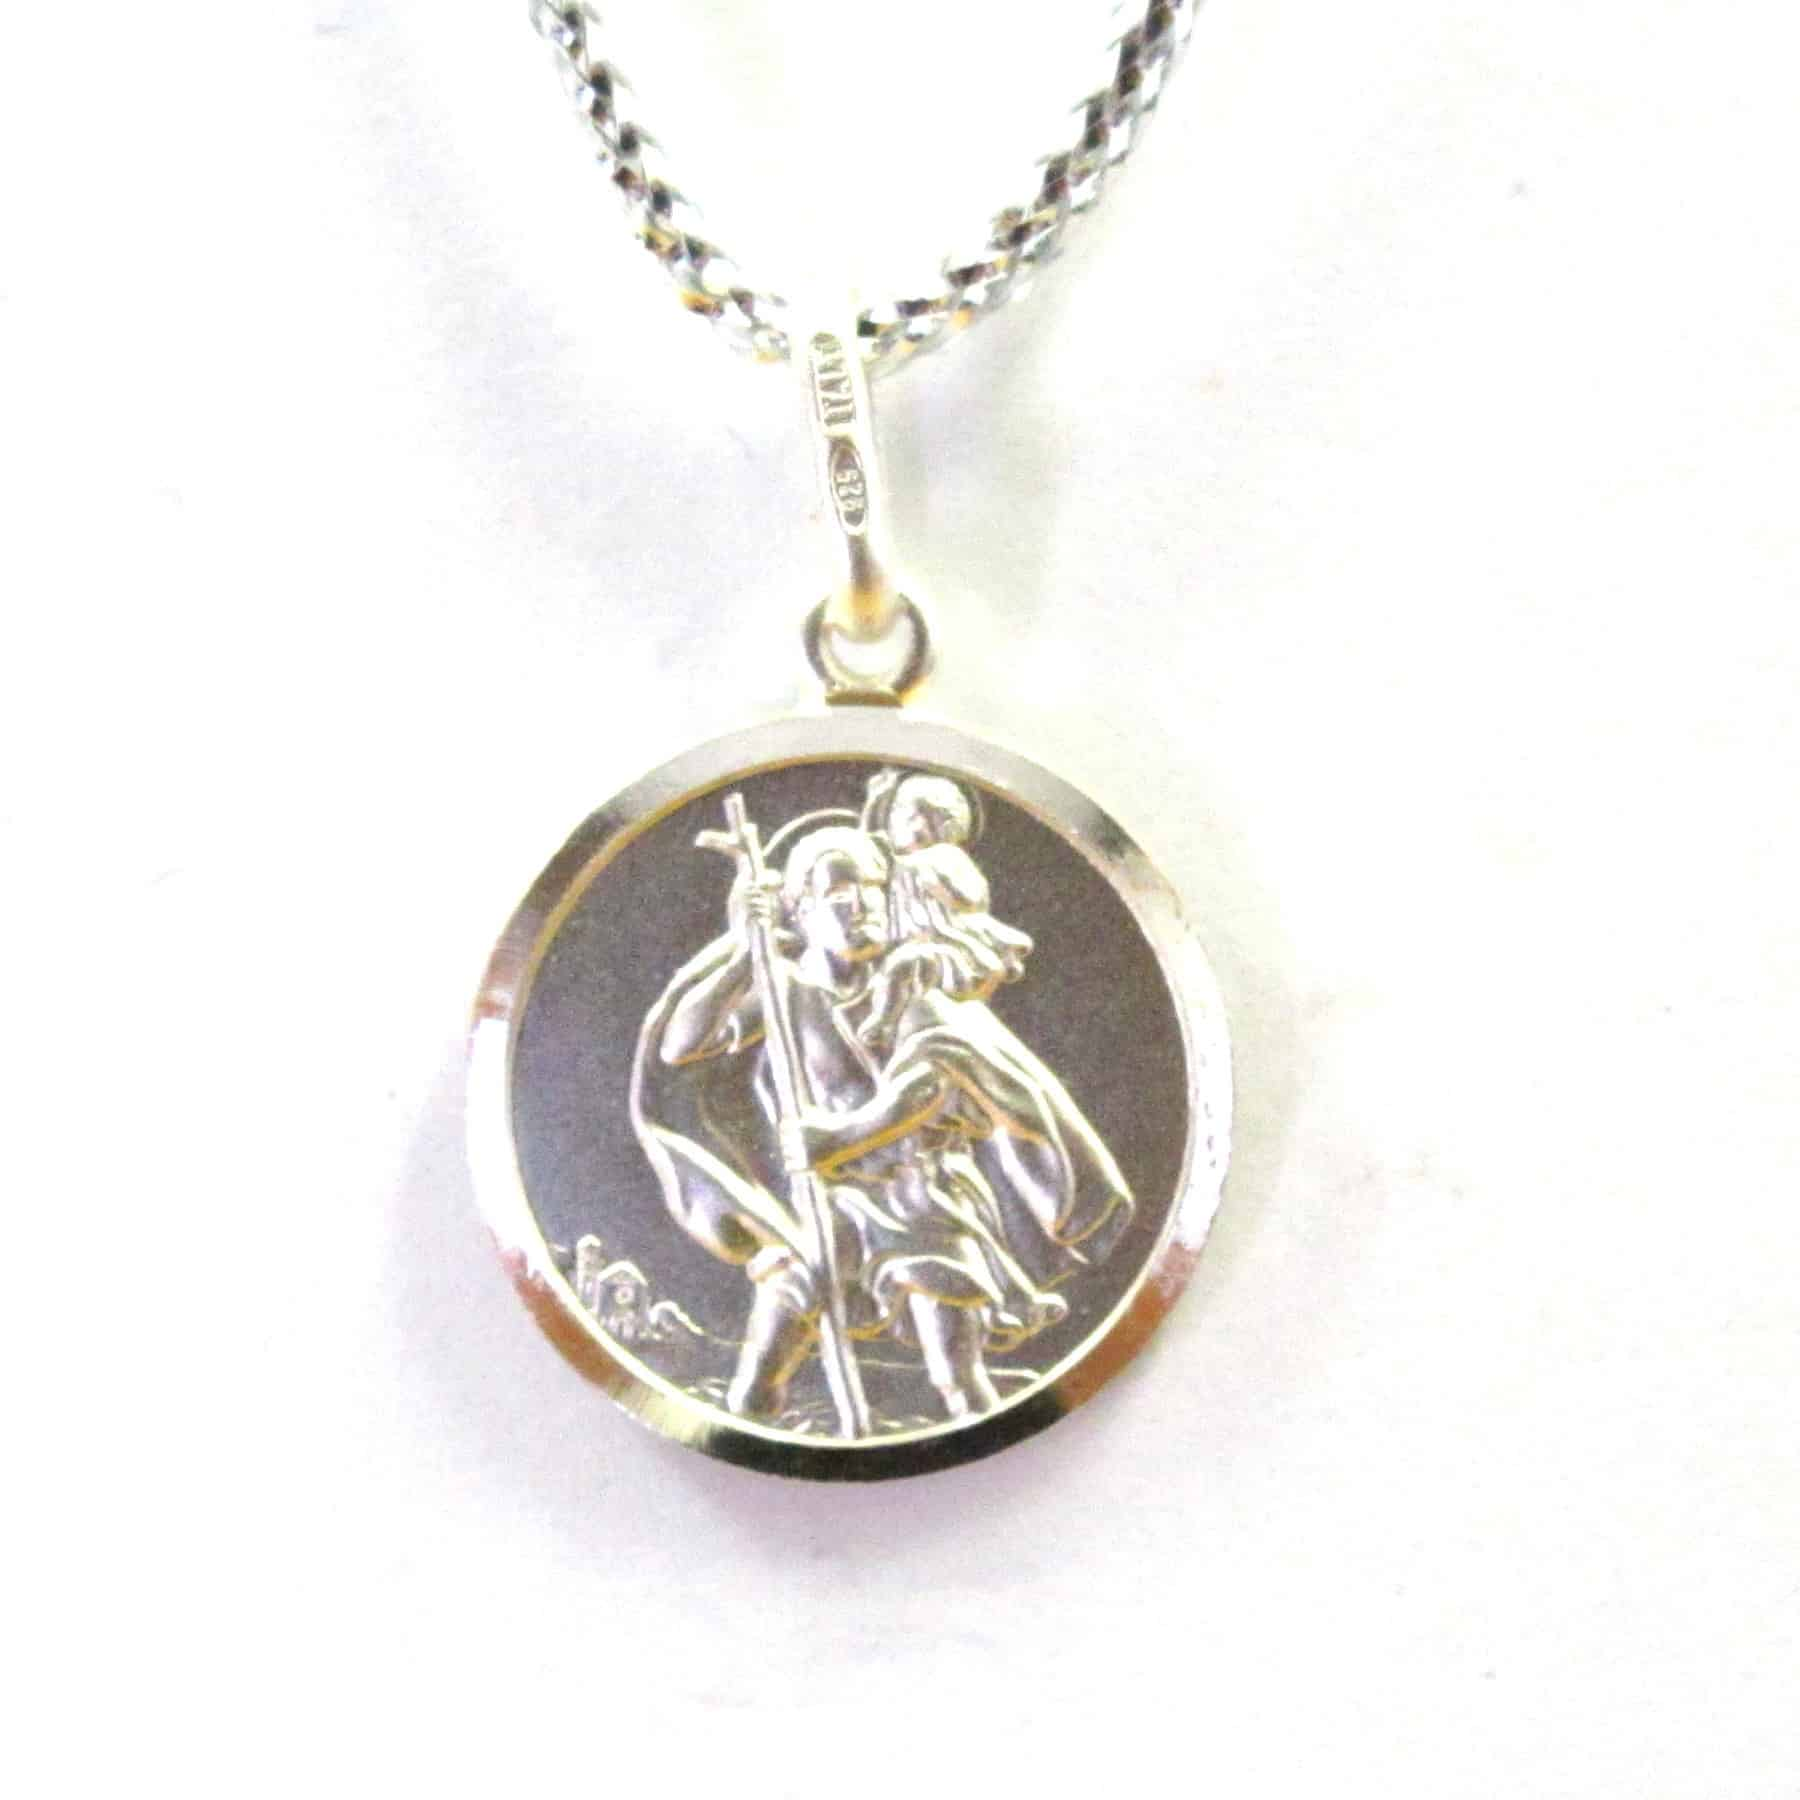 e96378402c1 Sterling Silver 925 18mm Round St.Christopher Pendant   Golden Touch ...